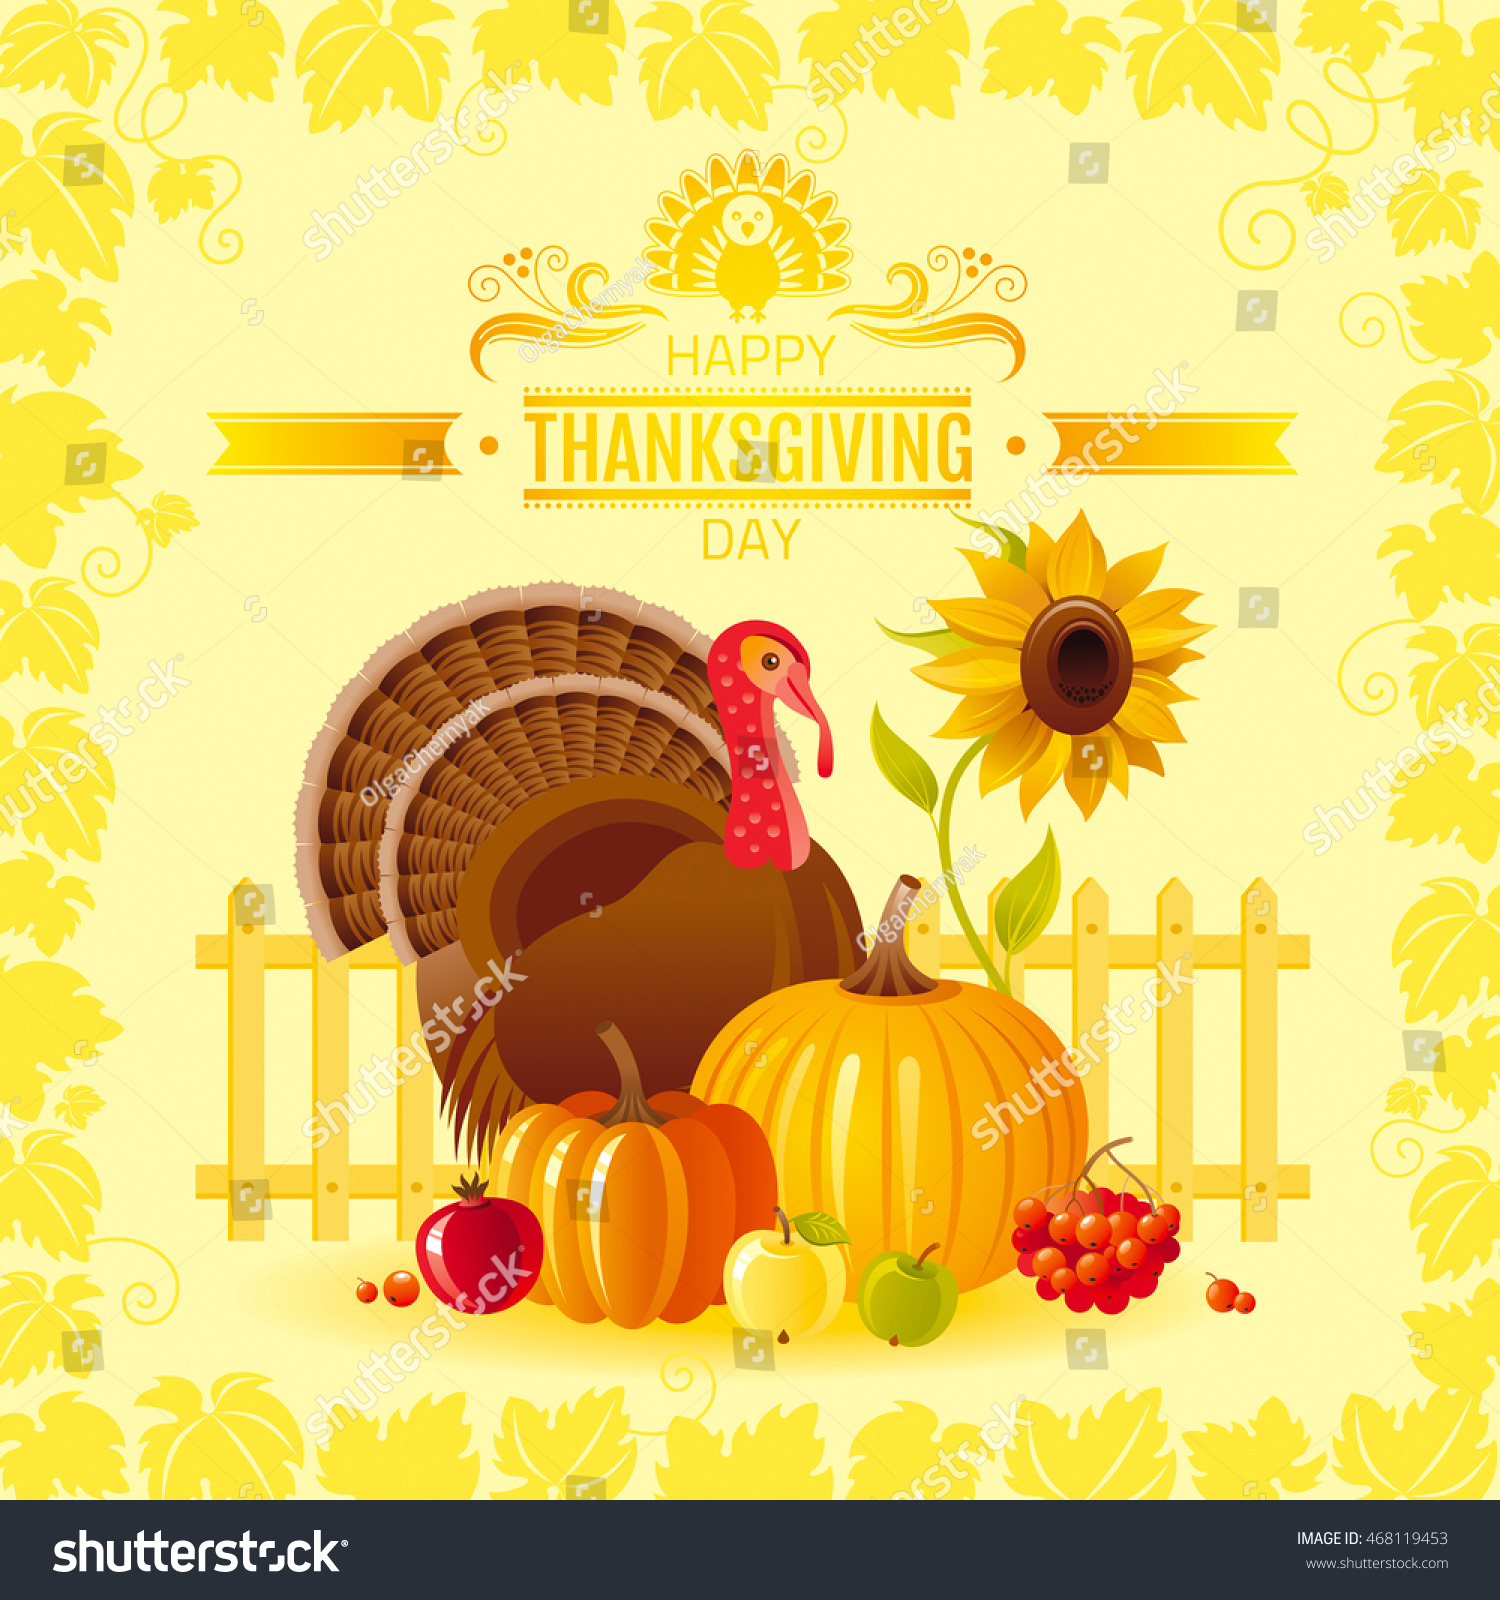 Vector Illustration Autumn Thanksgiving Greeting Card Stock Vector